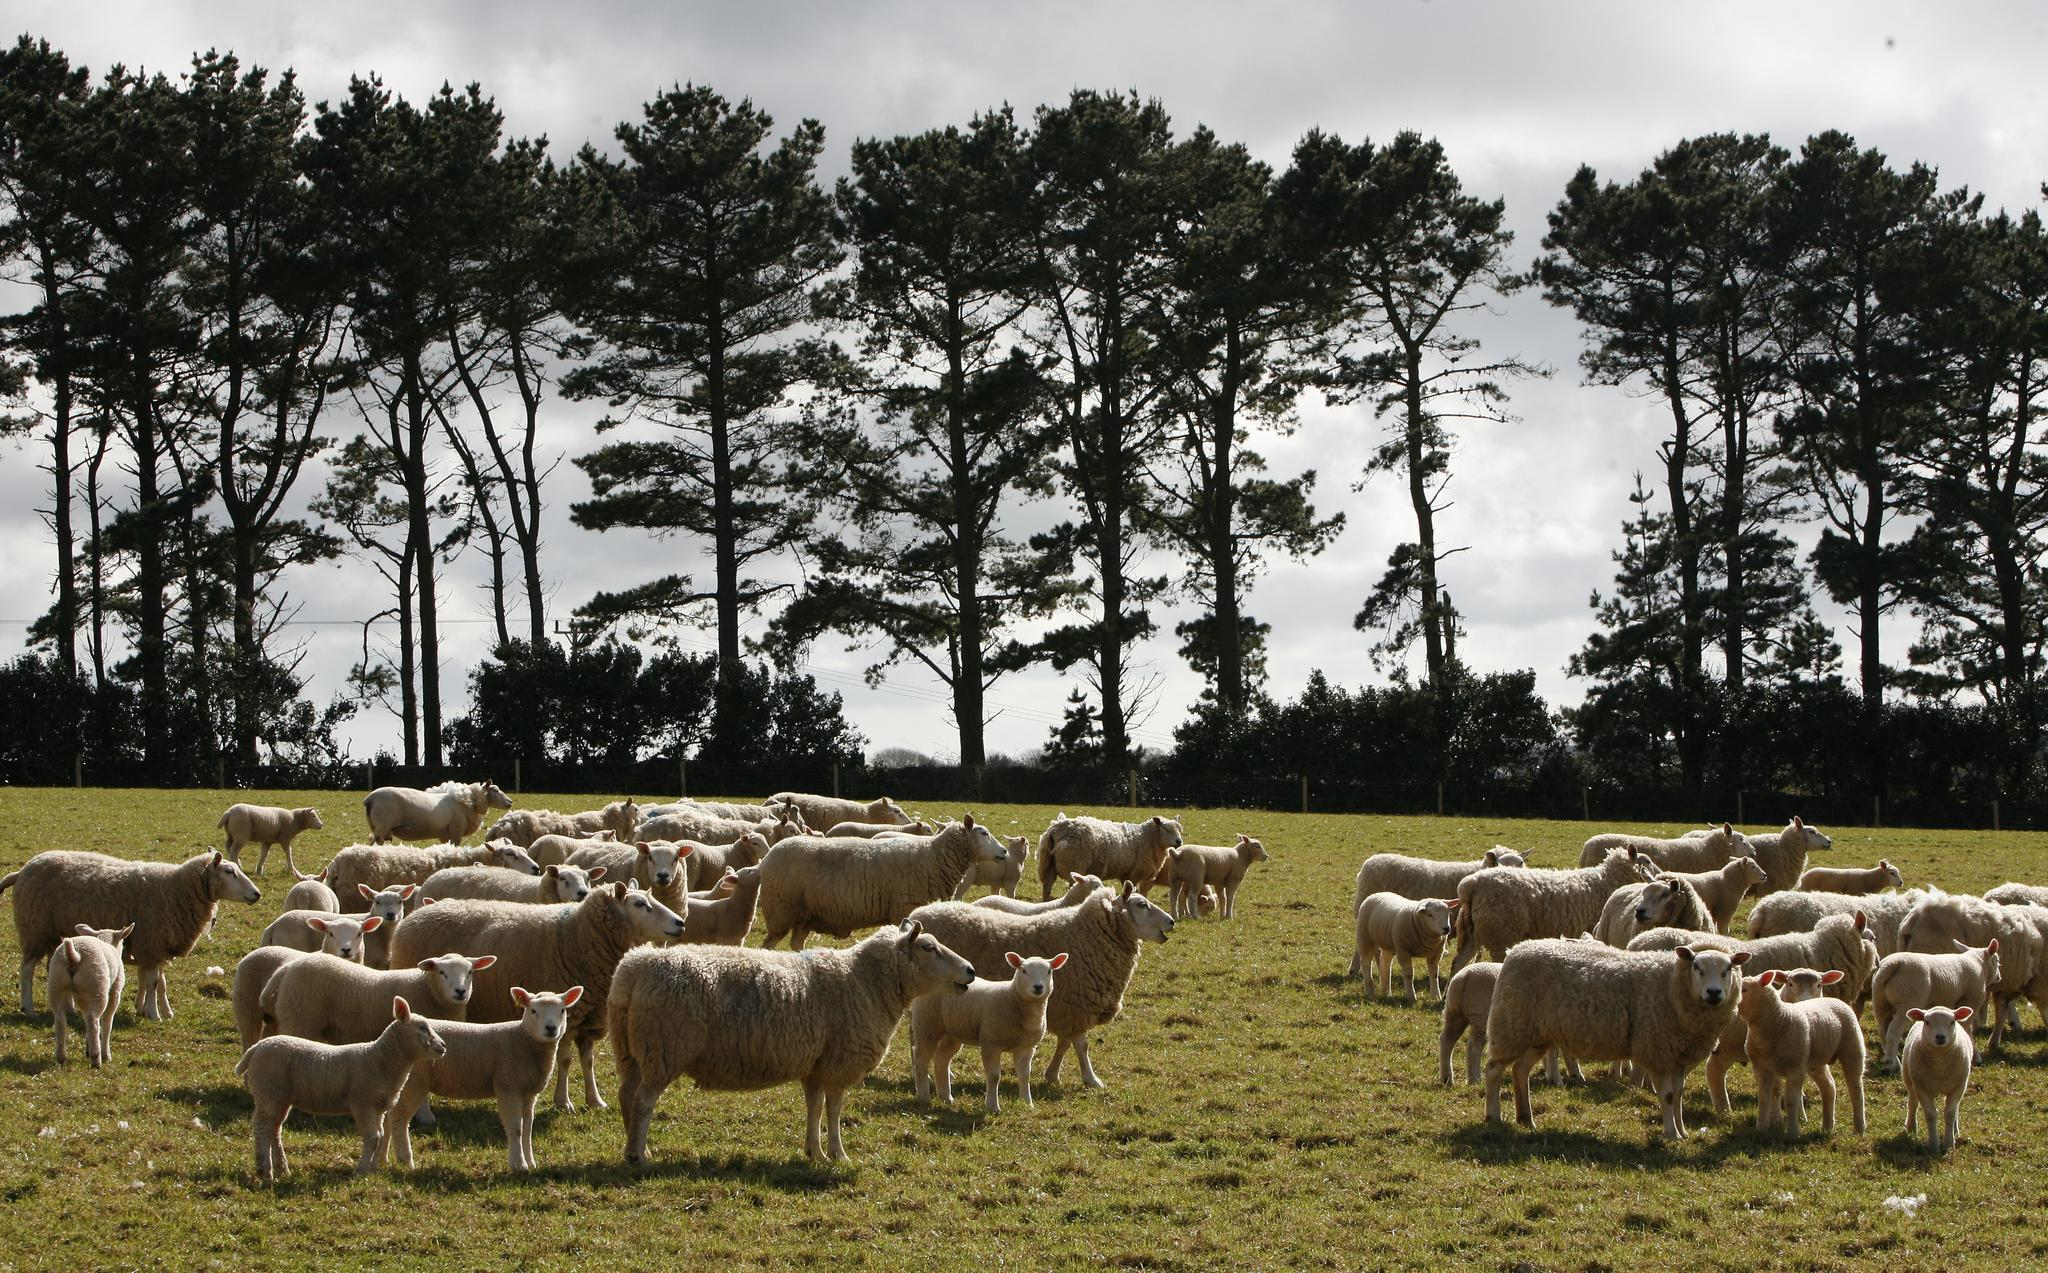 Sheep Behaviour Facts – Get to Know The Basics